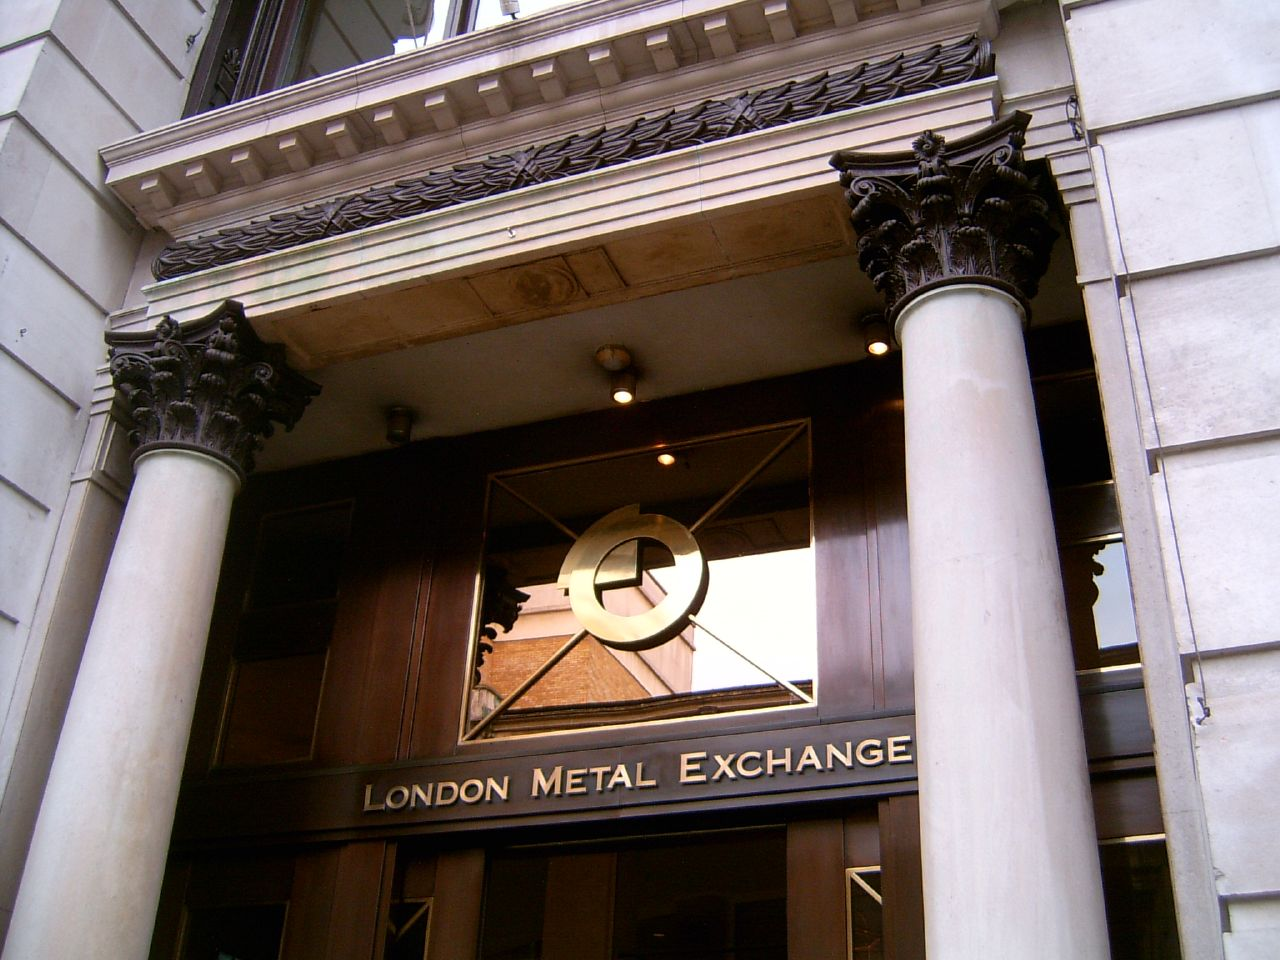 london metal exchange Every metal traded on the lme must conform to strict specifications regarding quality, lot size and shape each lme tradeable contract is likewise governed by rules covering (but not limited to) prompt dates, settlement terms, traded and cleared currencies and minimum tick size.